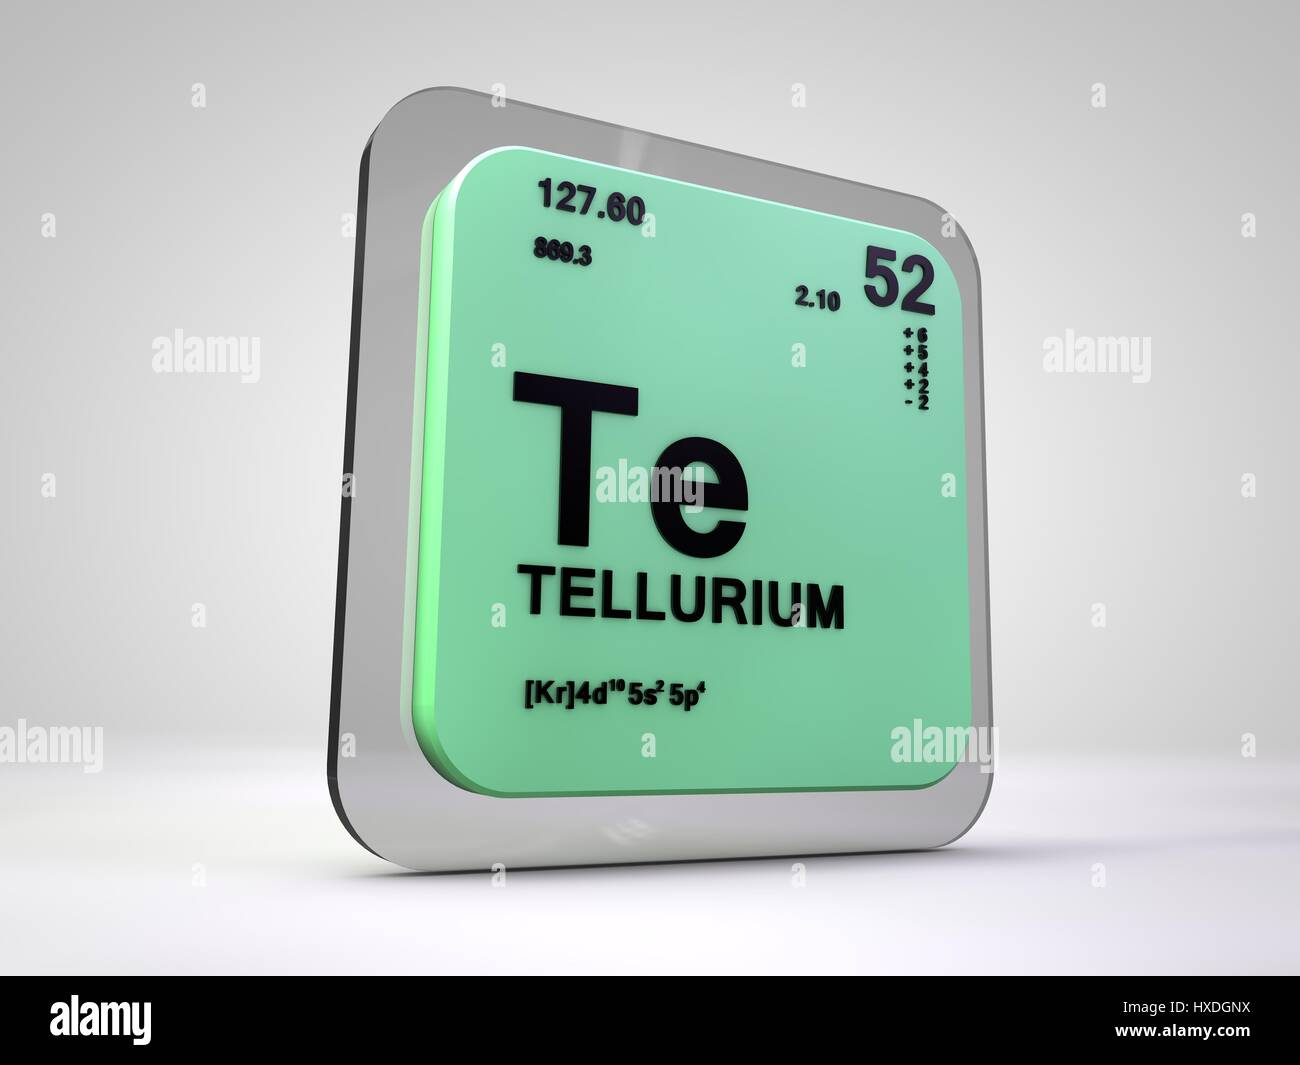 Tellurium te chemical element periodic table 3d render stock stock photo tellurium te chemical element periodic table 3d render gamestrikefo Choice Image